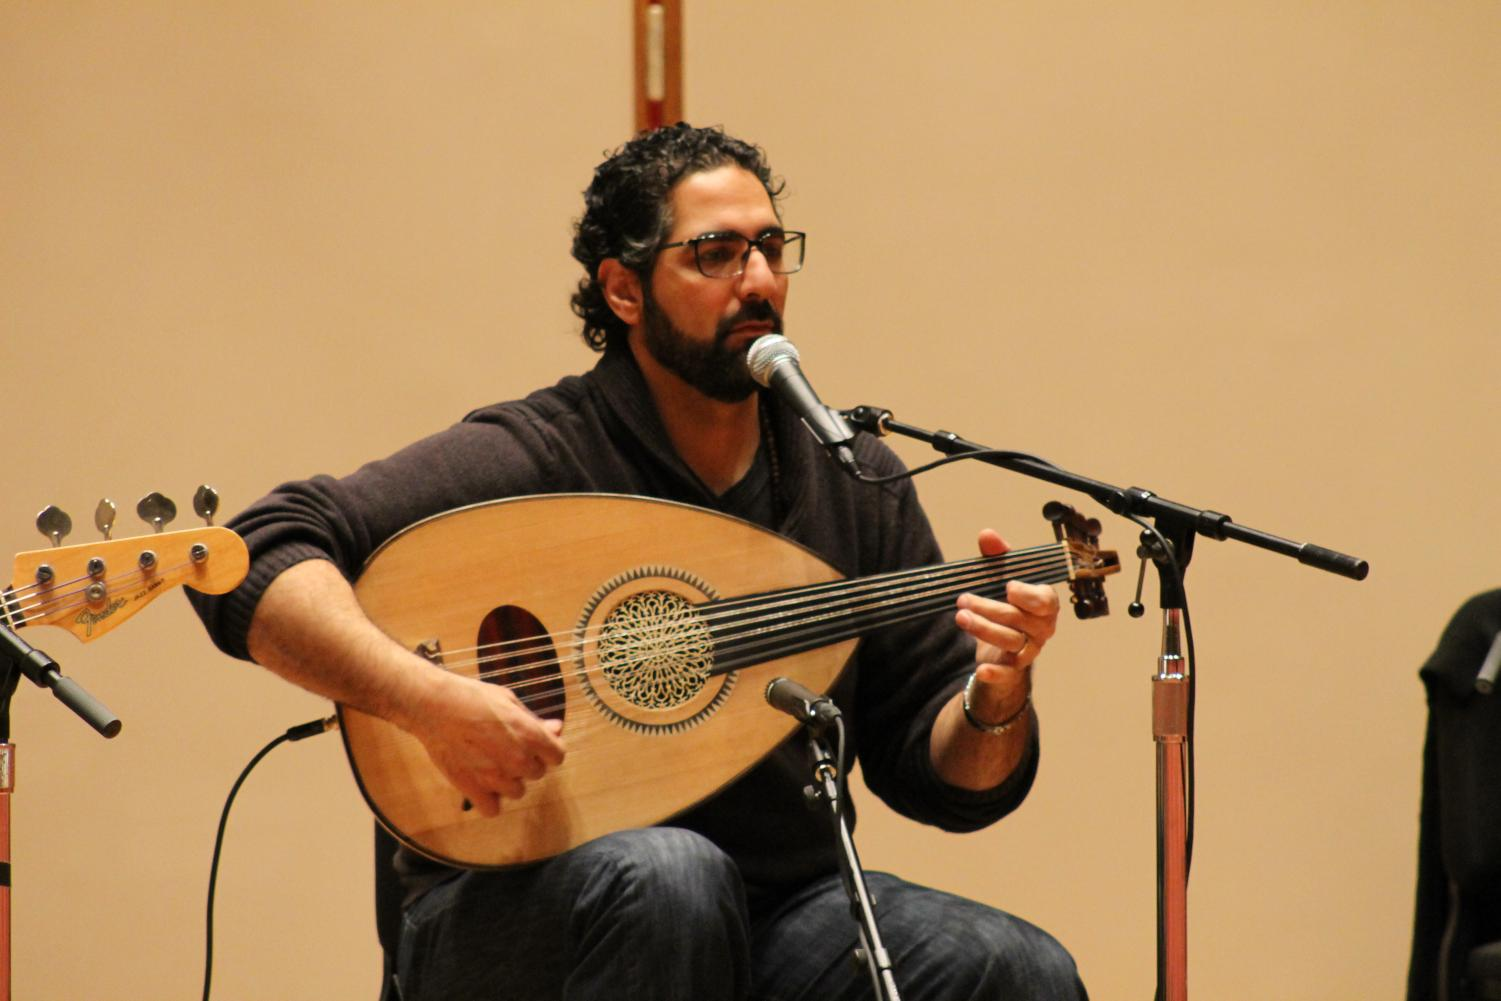 Ronnie Malley plays the oud and is the primary vocalist for Lamajamal.